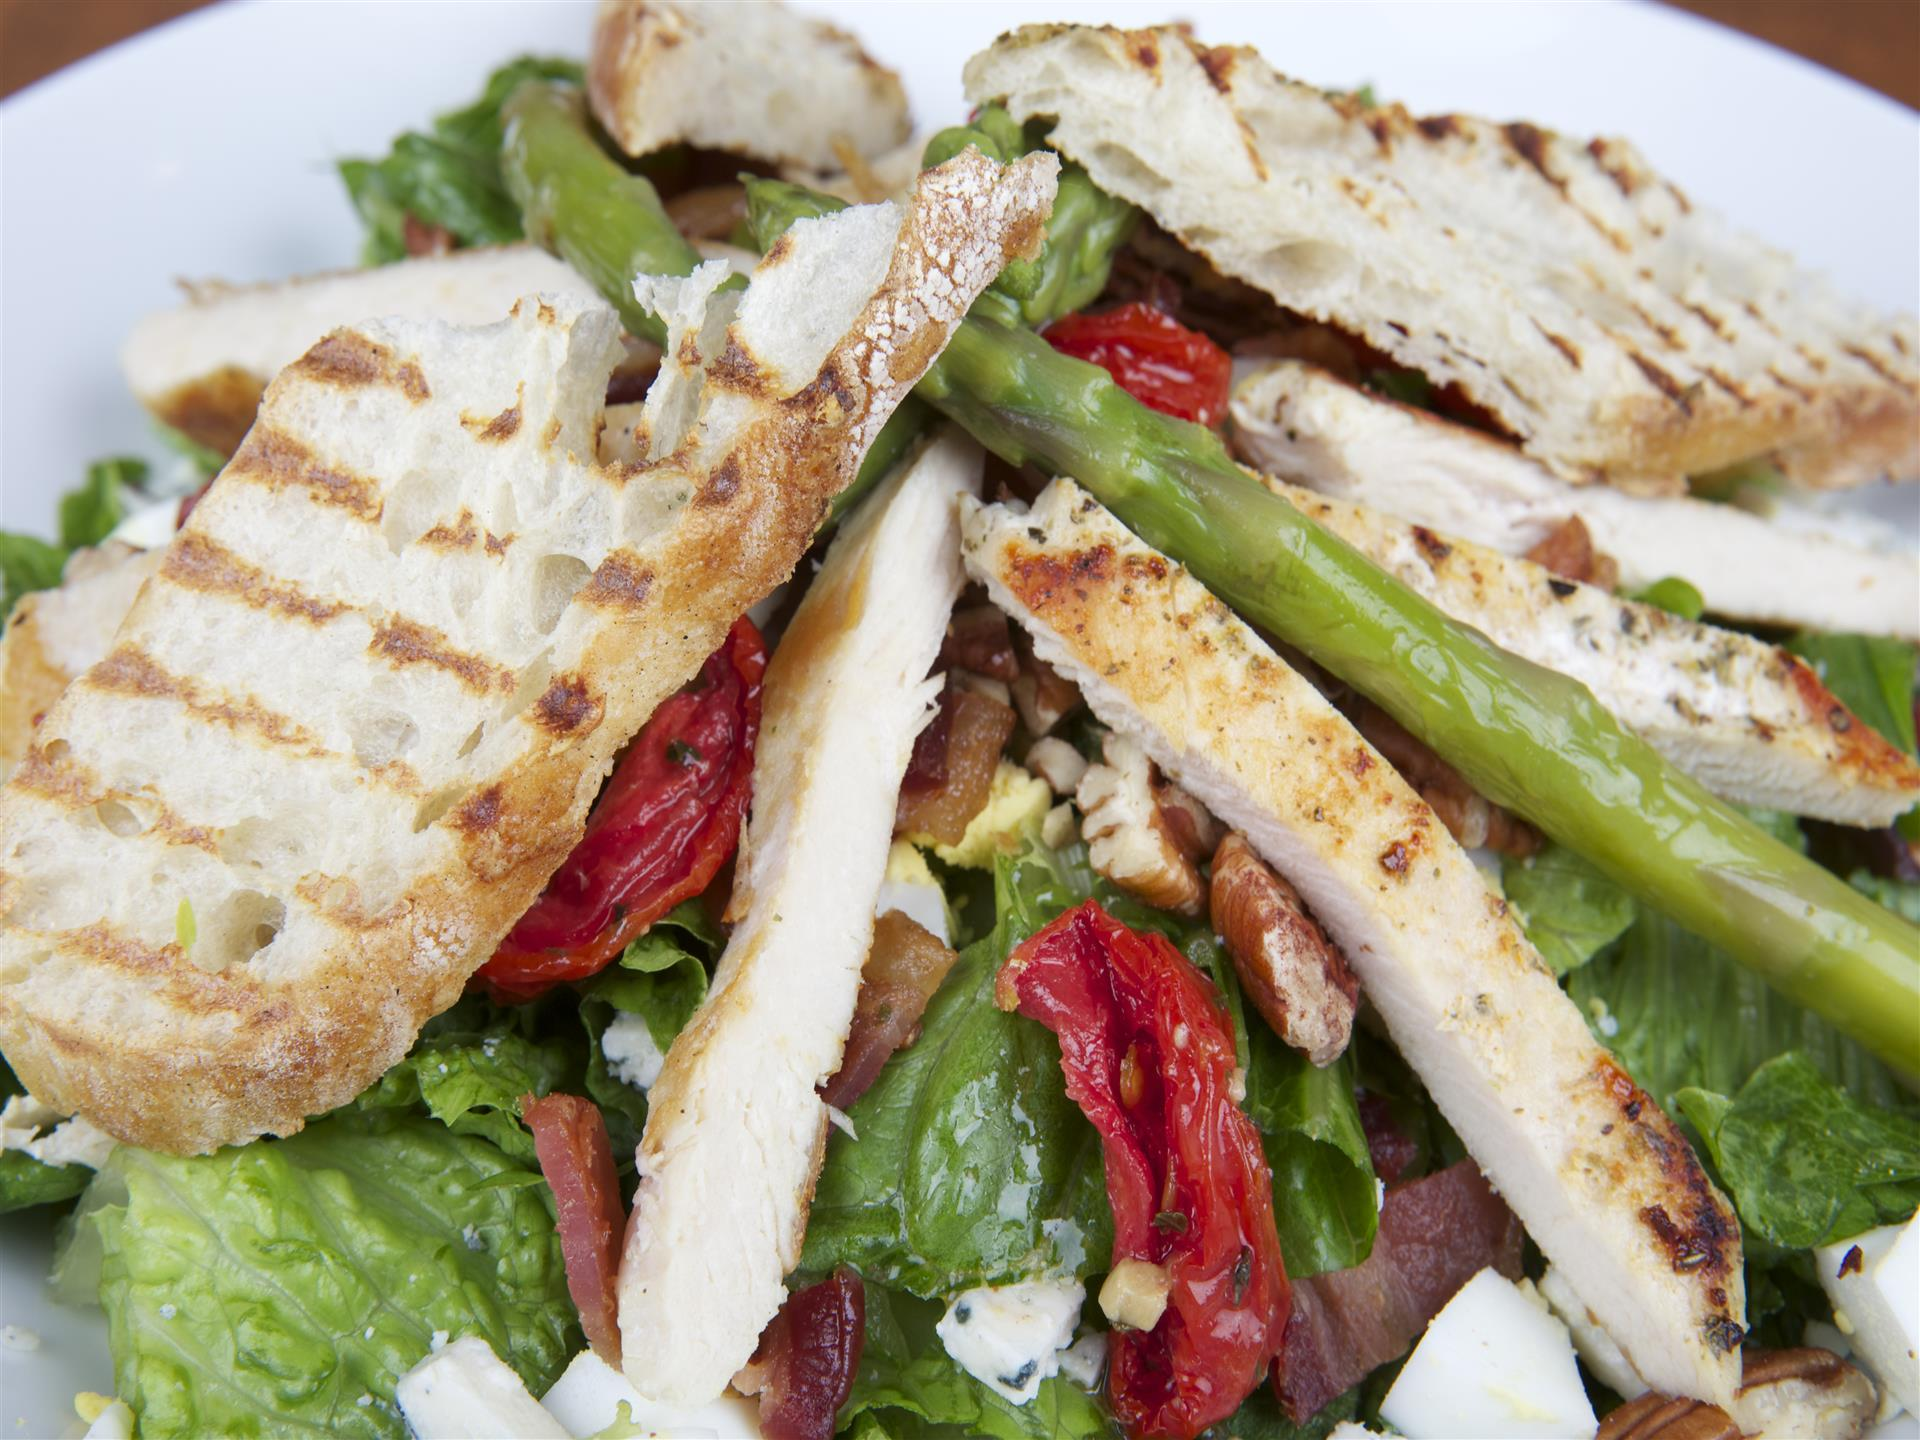 Asparagus Chicken Cobb Salad. A blend of mixed greens topped with asparagus, grilled chicken, chopped hard boiled egg, gorgonzola cheese, marinated sun-dried tomatoes, walnuts & bacon